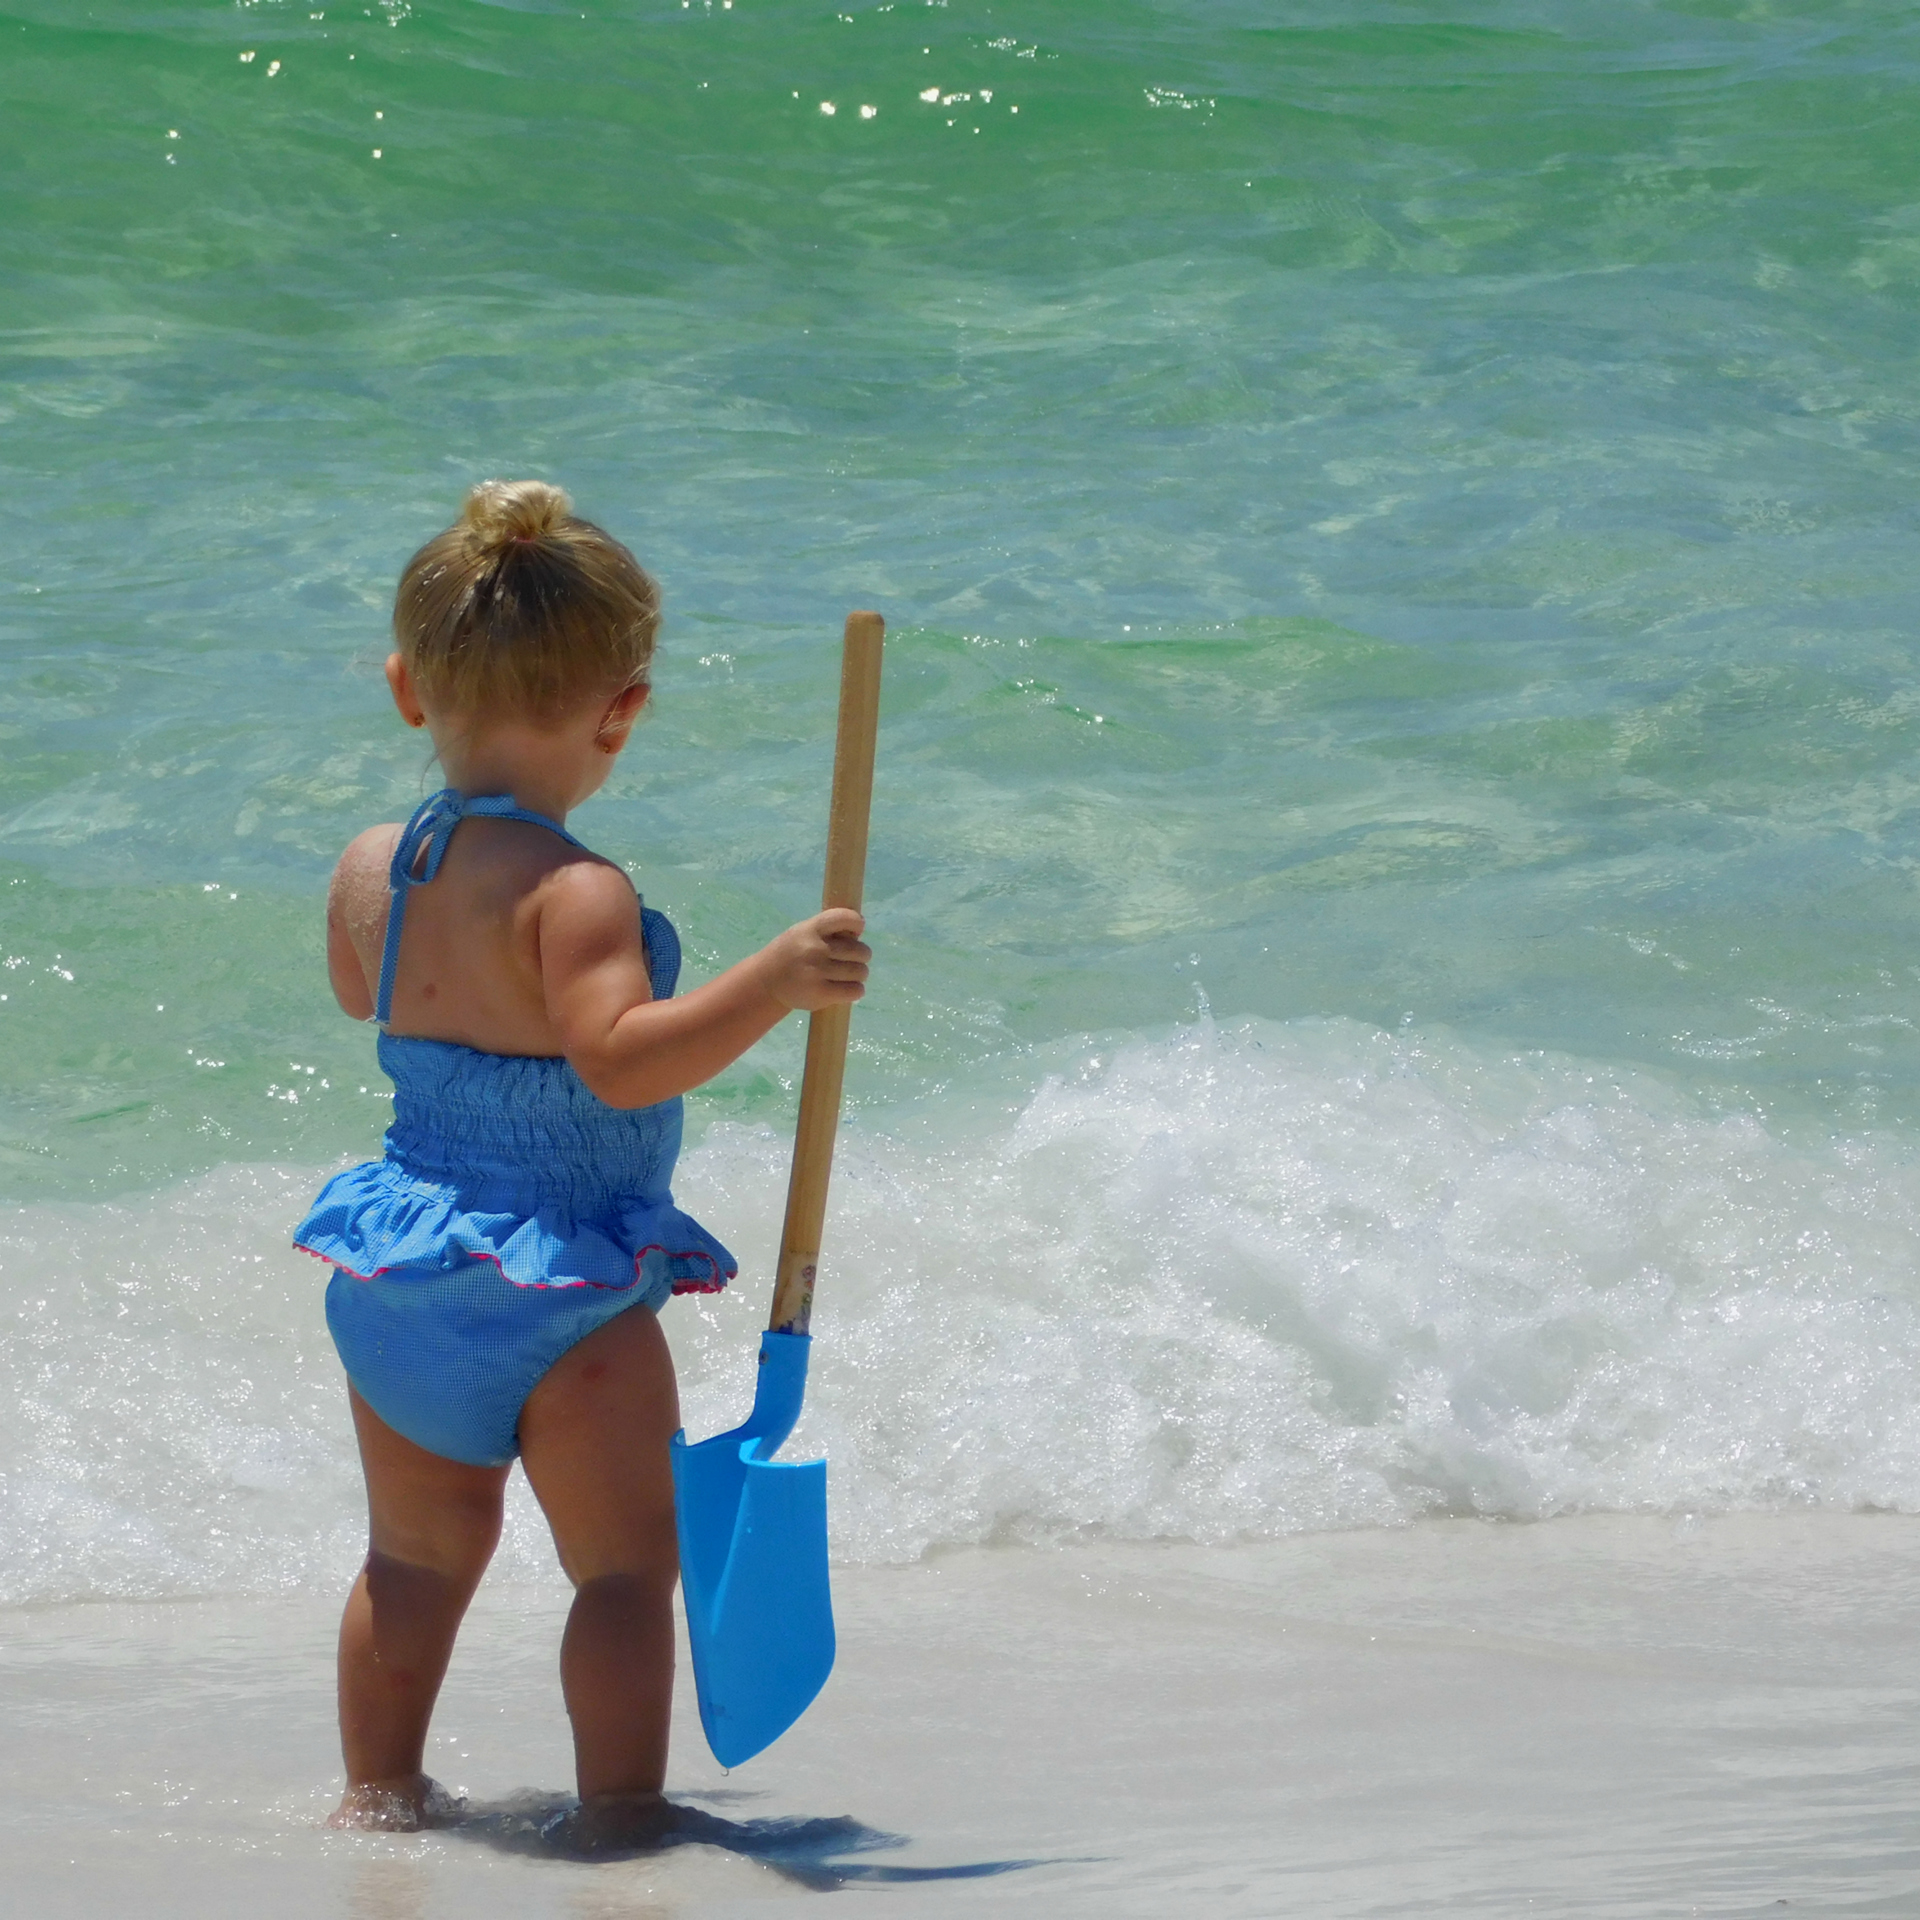 Early Summer Swimming! Beauty and the beach! Summer fun has begun in the Gulf of Mexico! Feel the sand between your toes!